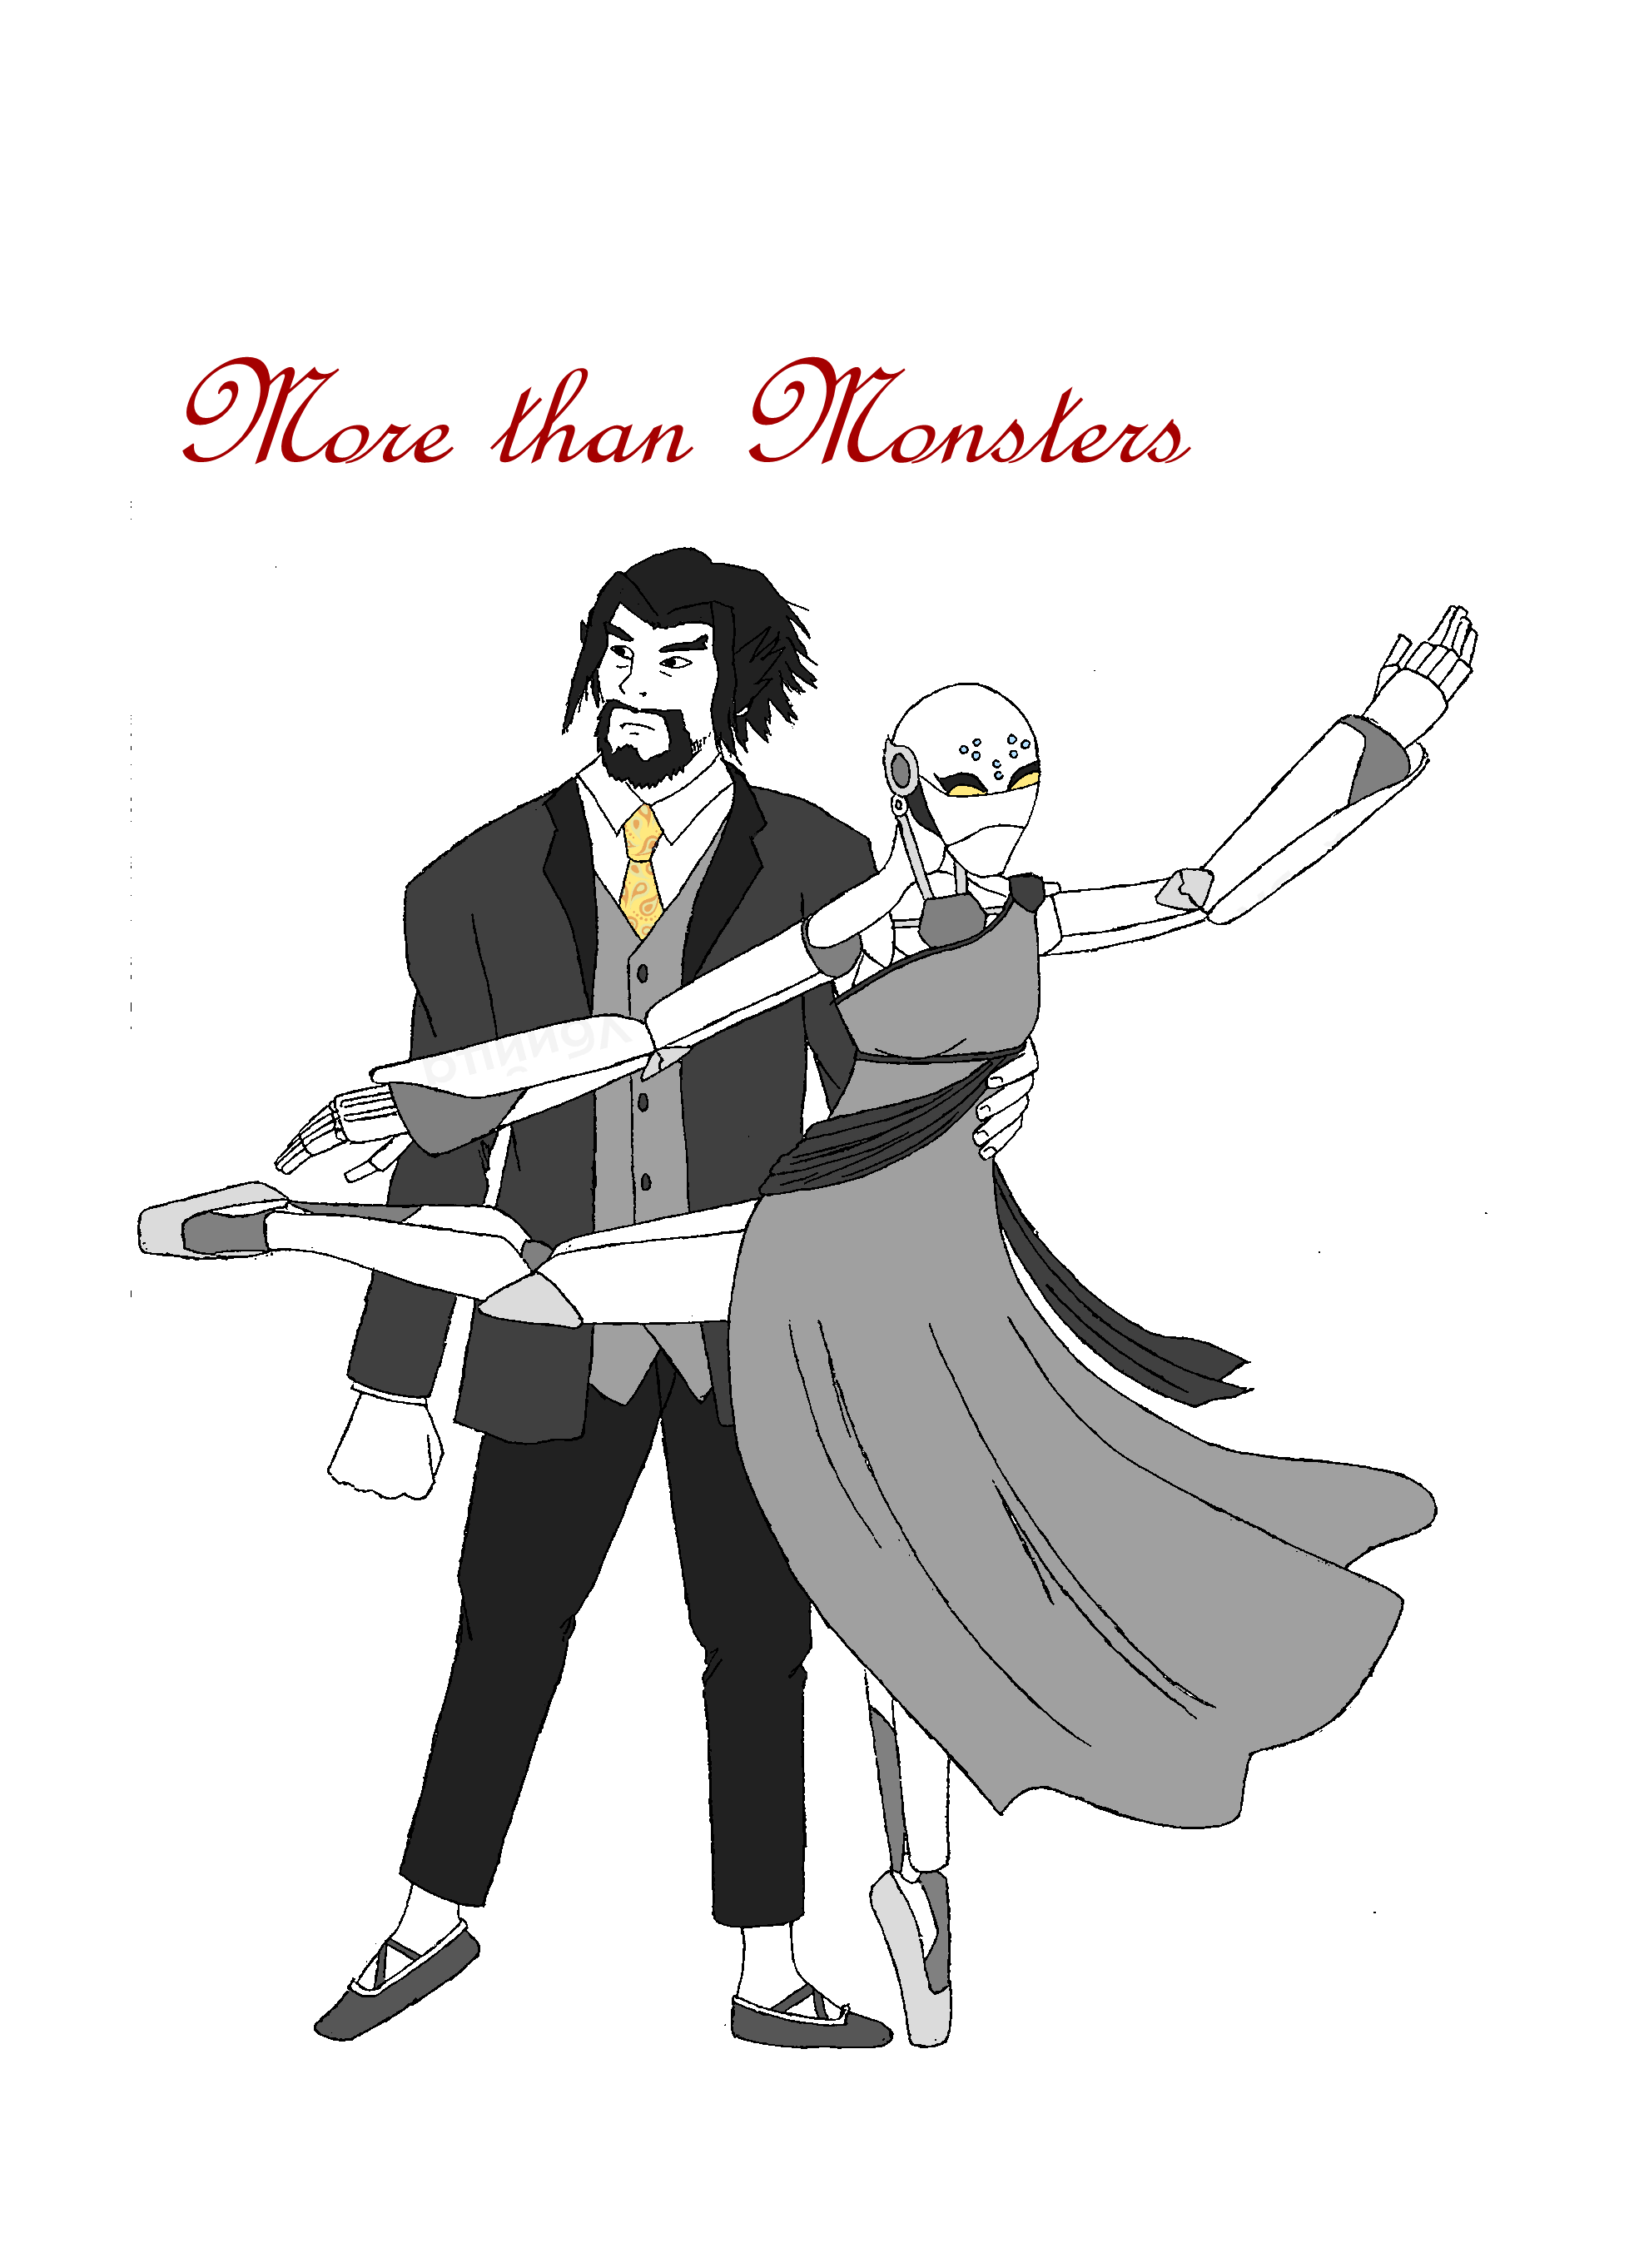 More than Monsters